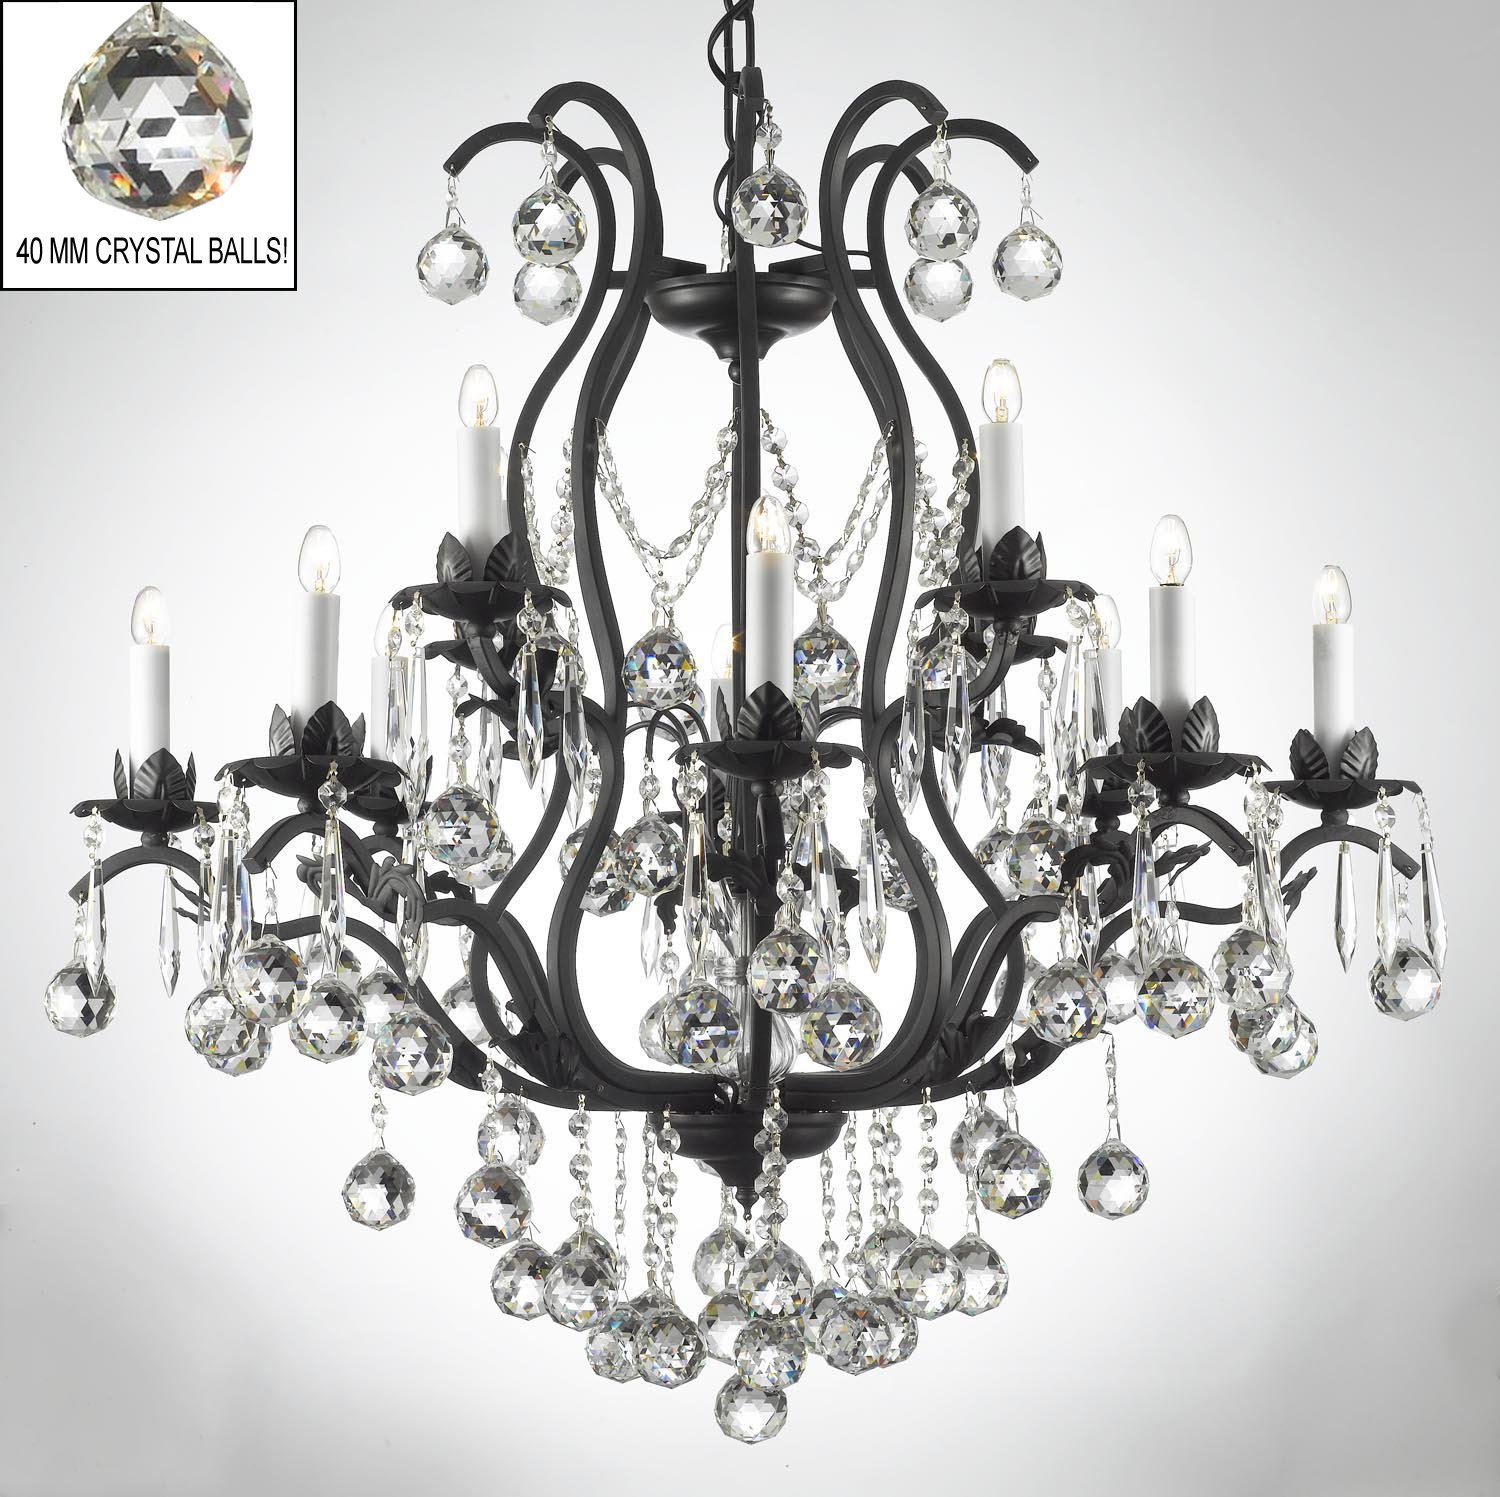 co iron ltd list chandelier sunwe crystal making and lighting we hongkong swarovski chandeliers specialize in wrought